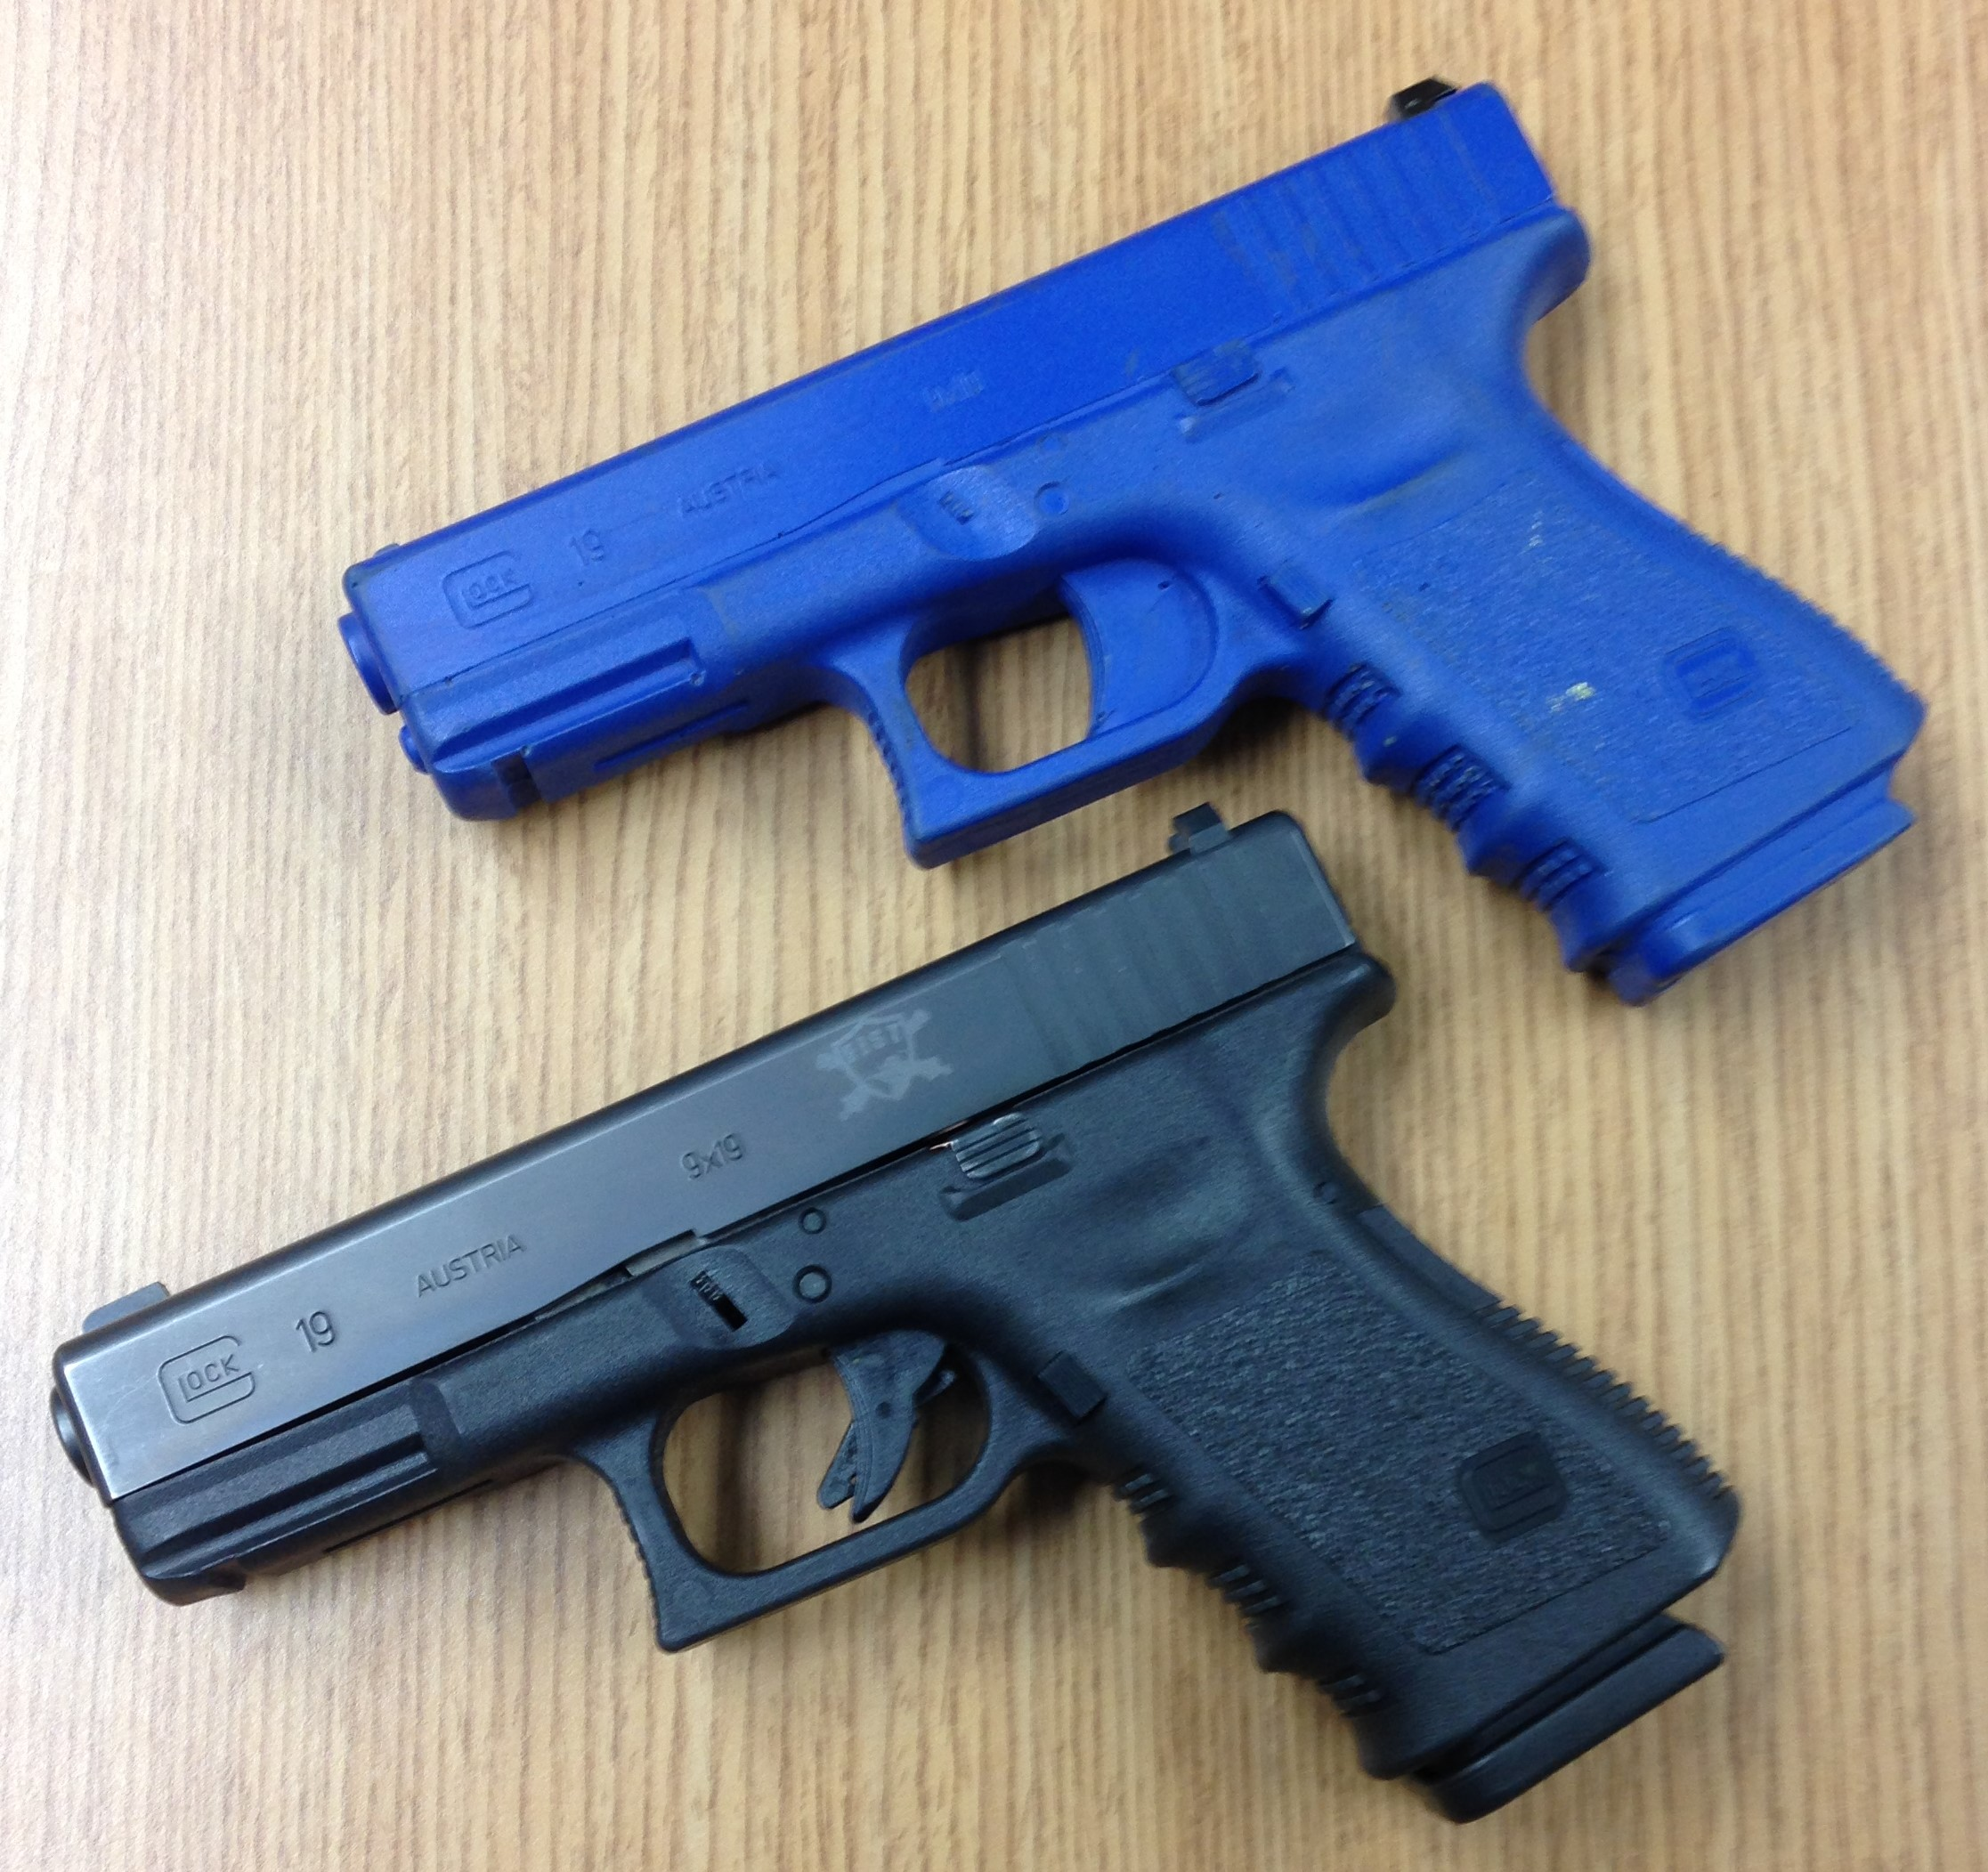 Glock 19 and blue gun clone. Photo: author